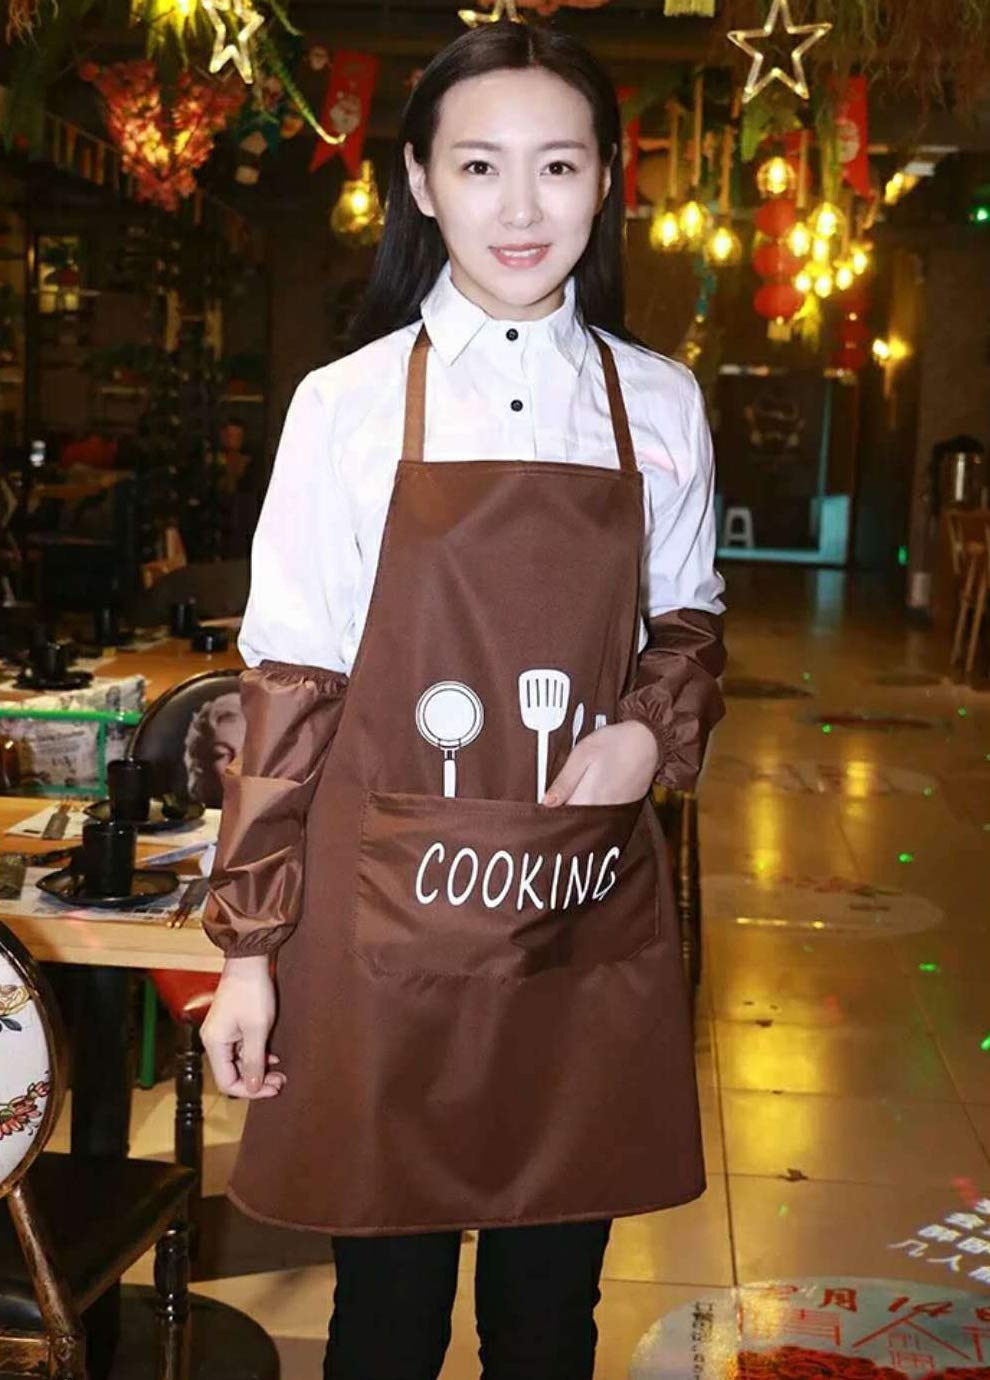 Leeotia Water Resistant and Oil-Proof Cooking or Baking Apron with 2 Pockets Great Gifts for Both Women and Man- Coffee